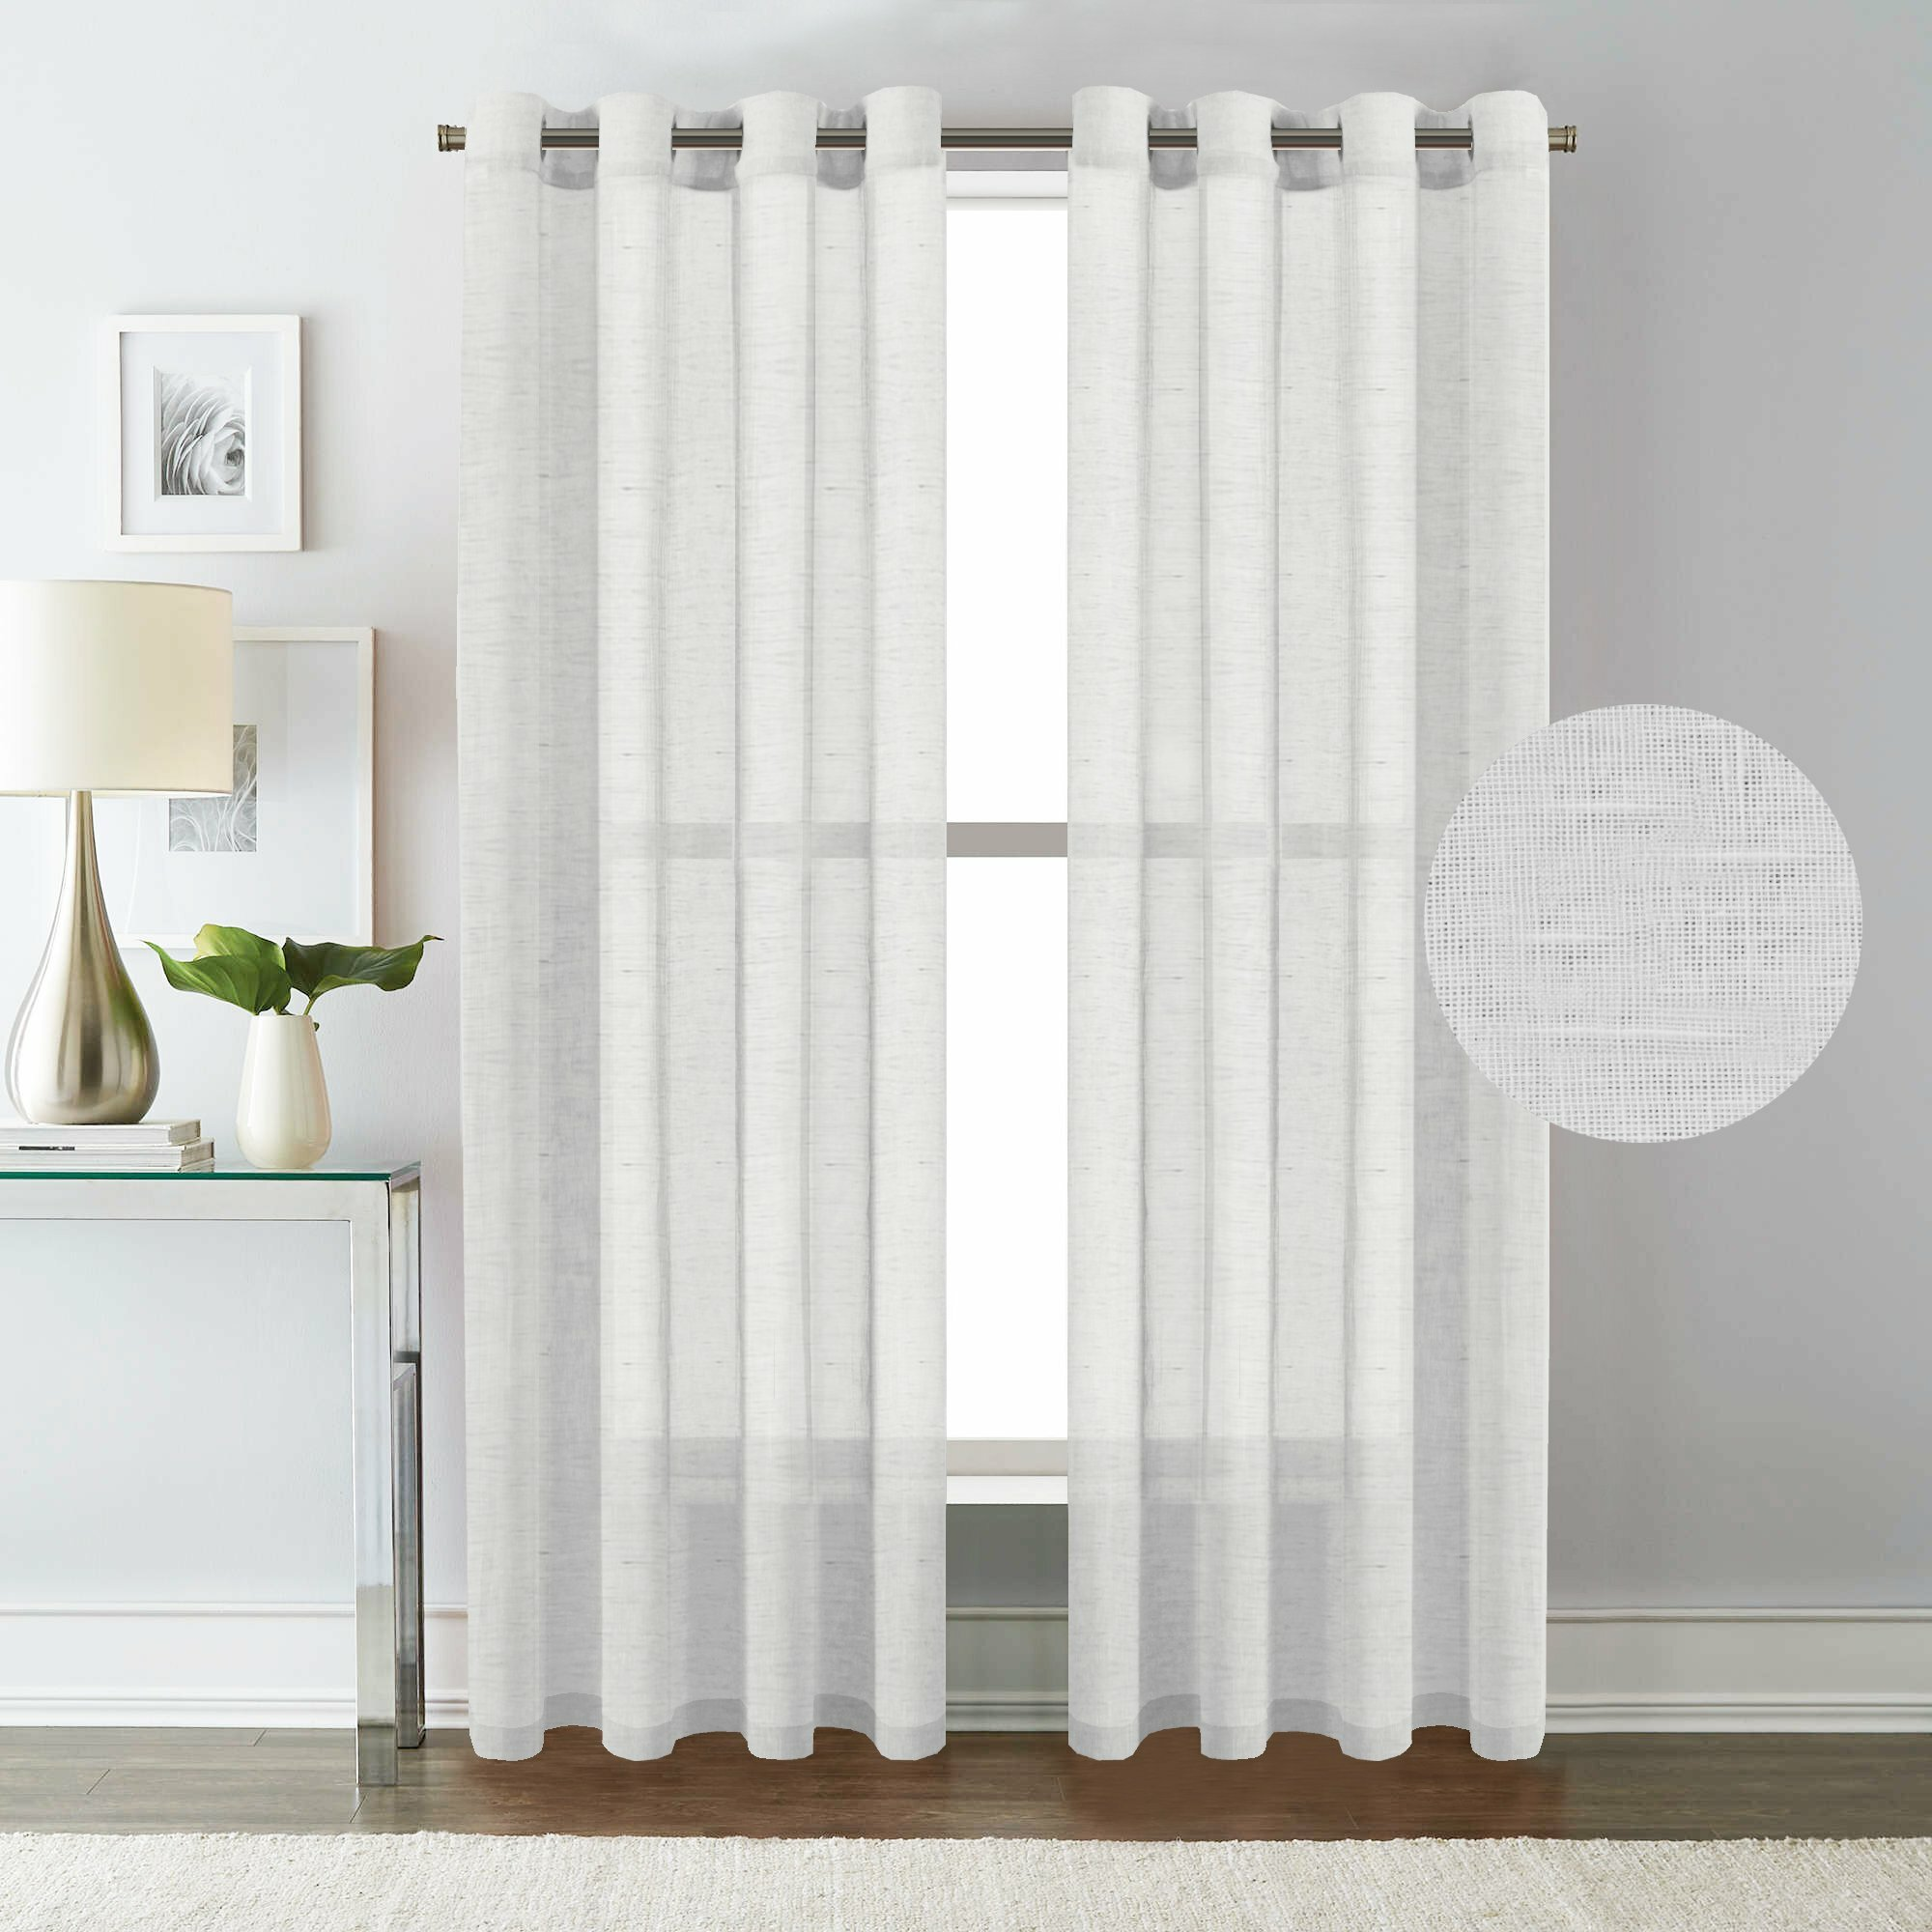 more treatments darcy wid panel qlt grommet blackout window category pocket top curtains linen drapes hei bed rod store curtain home styles decor